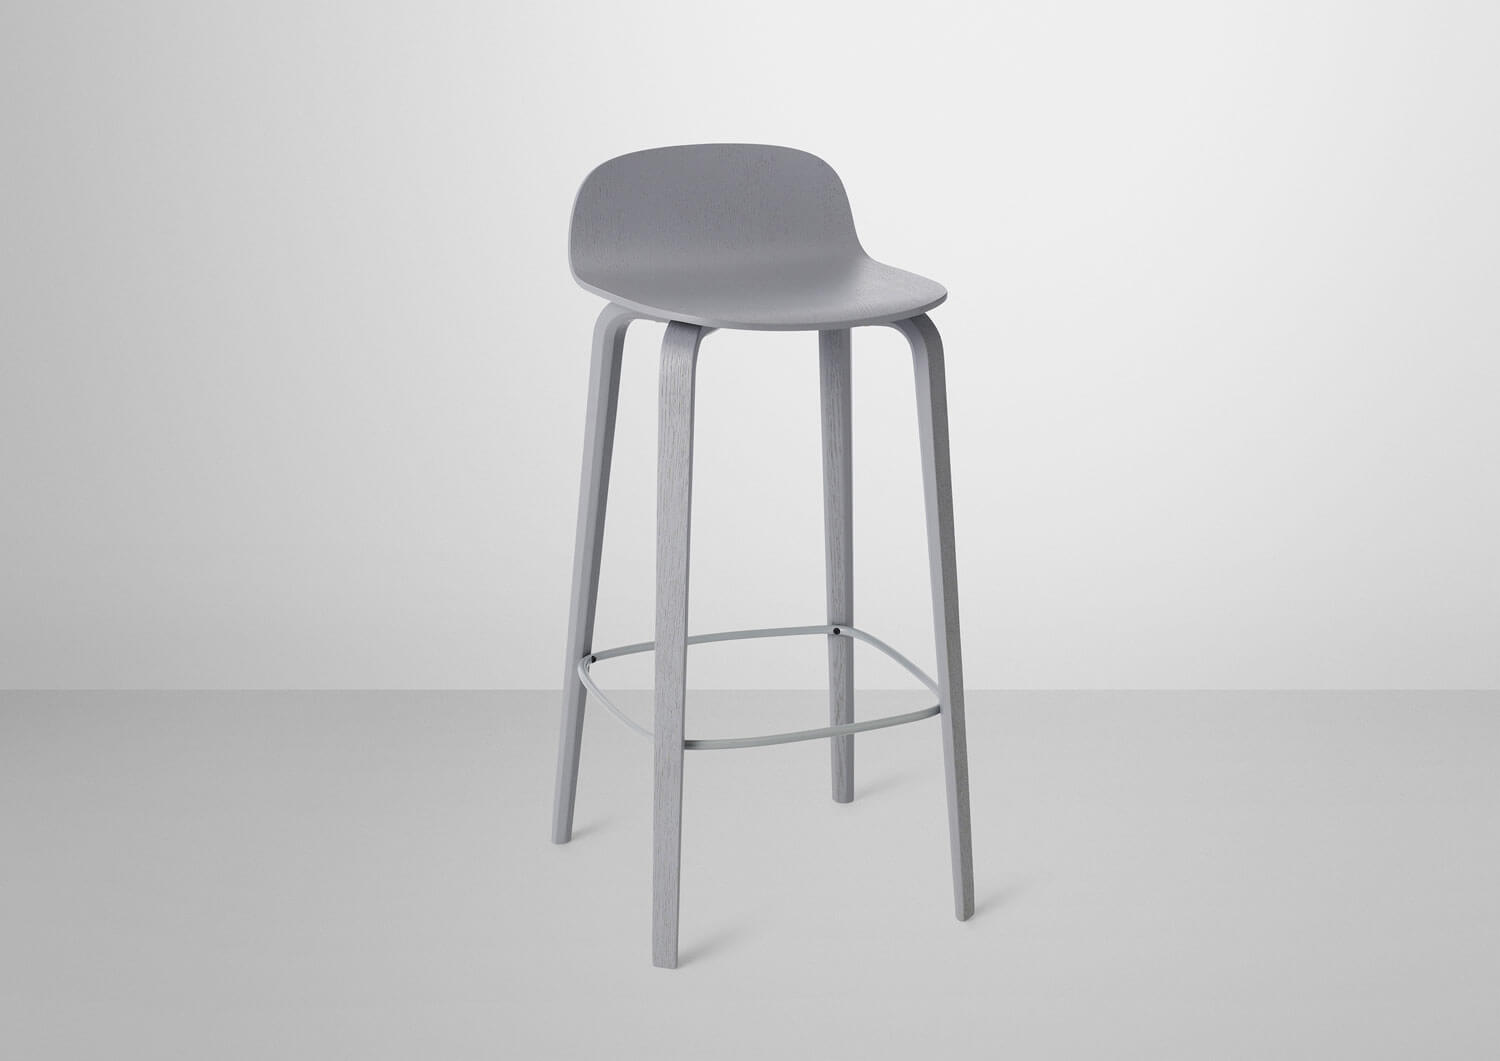 Visu_bar_stool_grey_tinyjpg.jpg